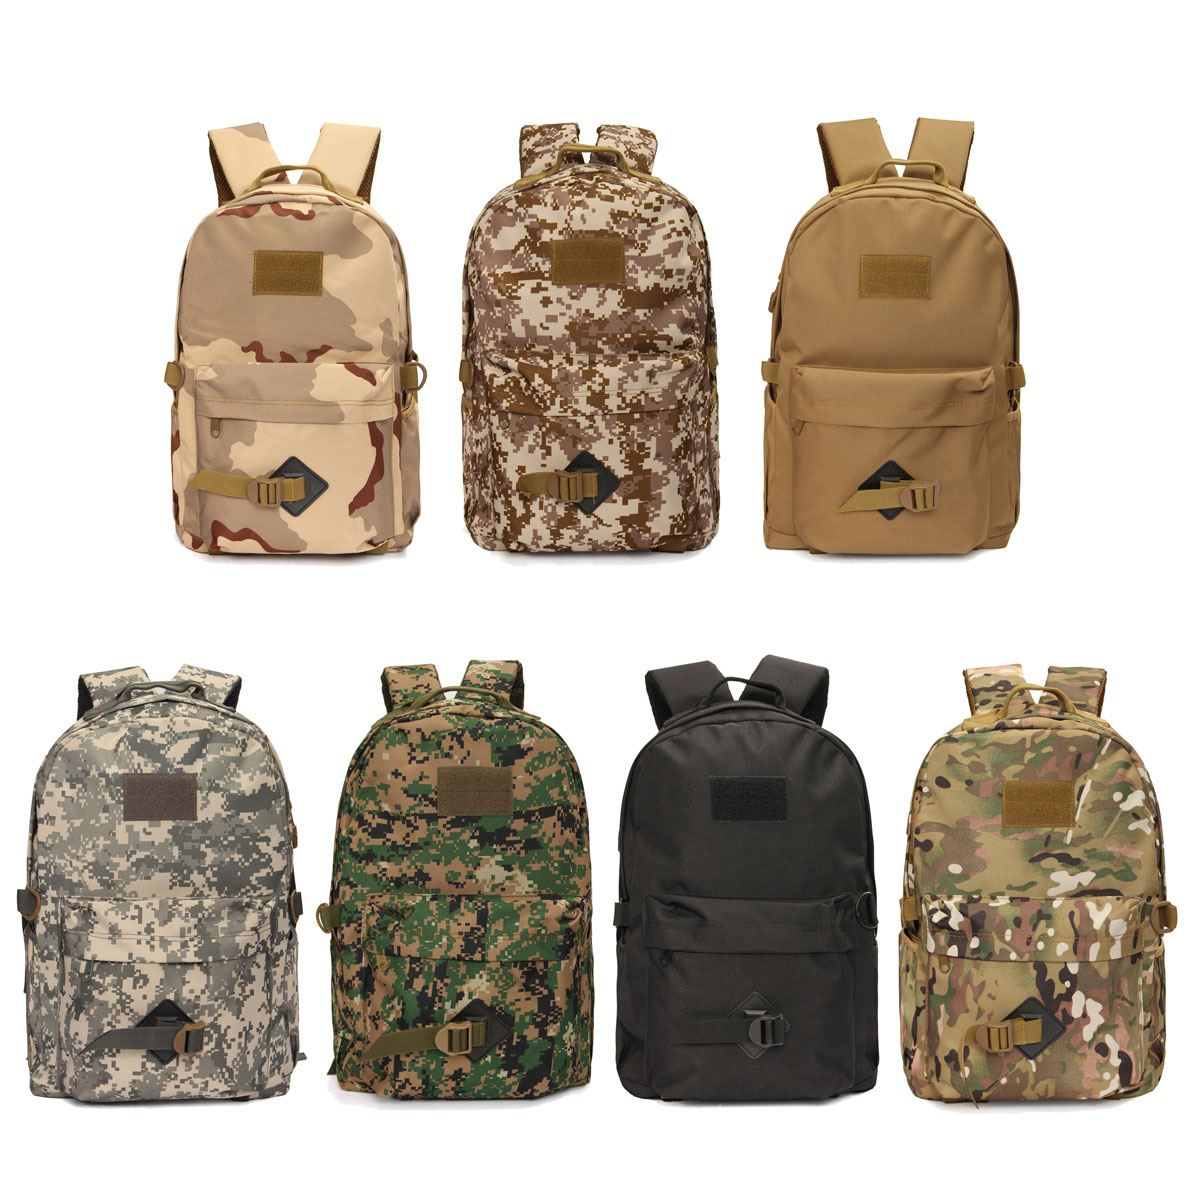 30L Outdoor Tactical Backpack Camouflage bag Shoulder Nylon Bag Waterproof Rucksack backpack For Camping Hiking Travel Climbing 30l military army tactical outdoor backpack 600d nylon camouflage bag camping hiking hunting fishing sport outdoor backpack bag